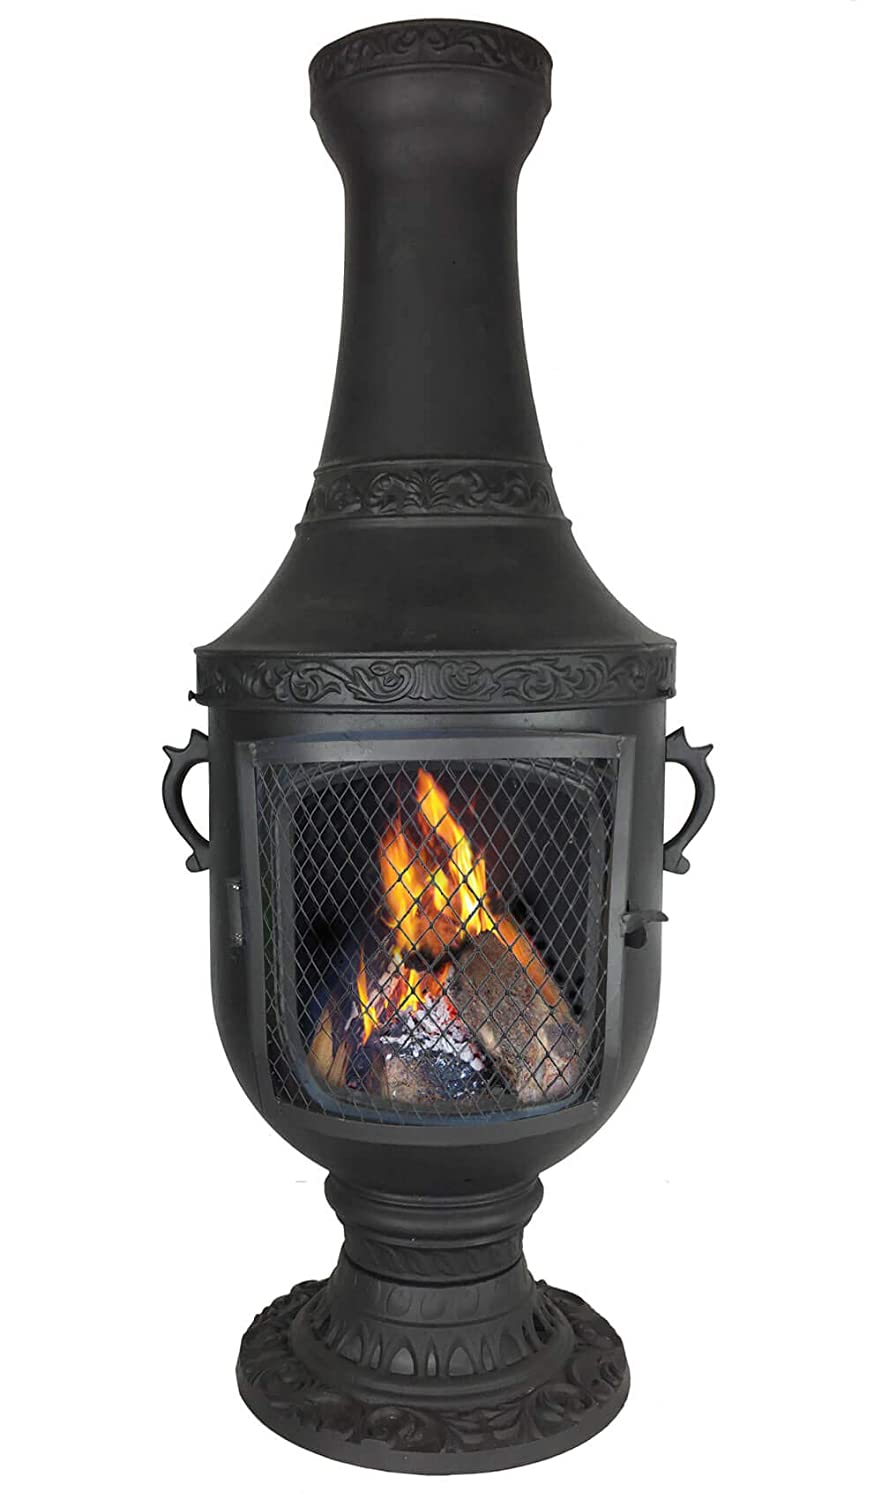 The Blue Rooster CAST Aluminum Venetian Chiminea in Charcoal.